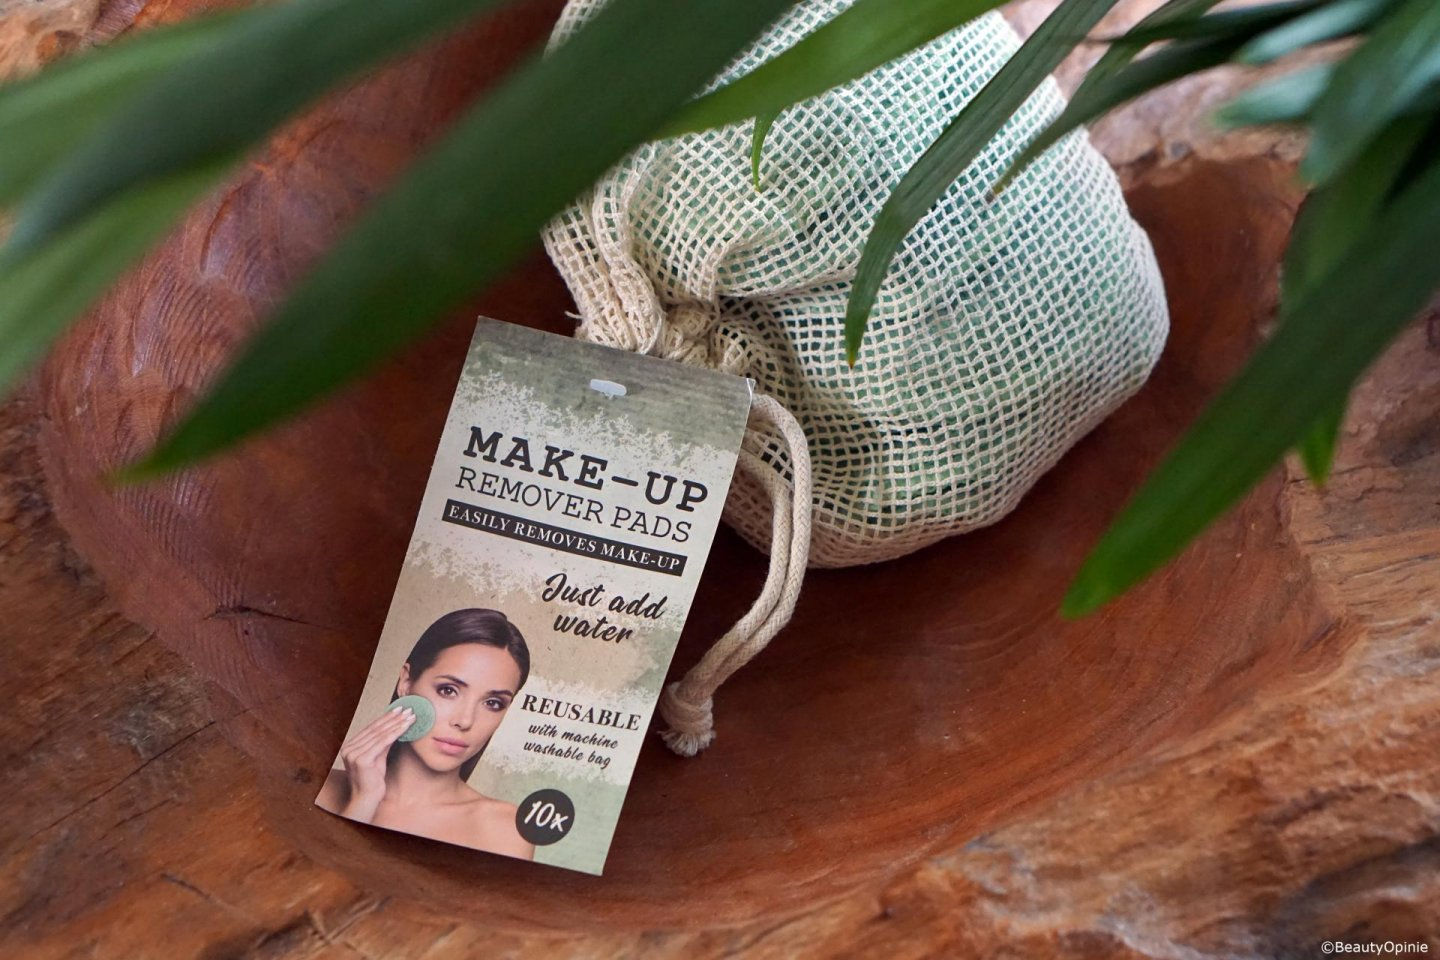 Action make-up remover pads review